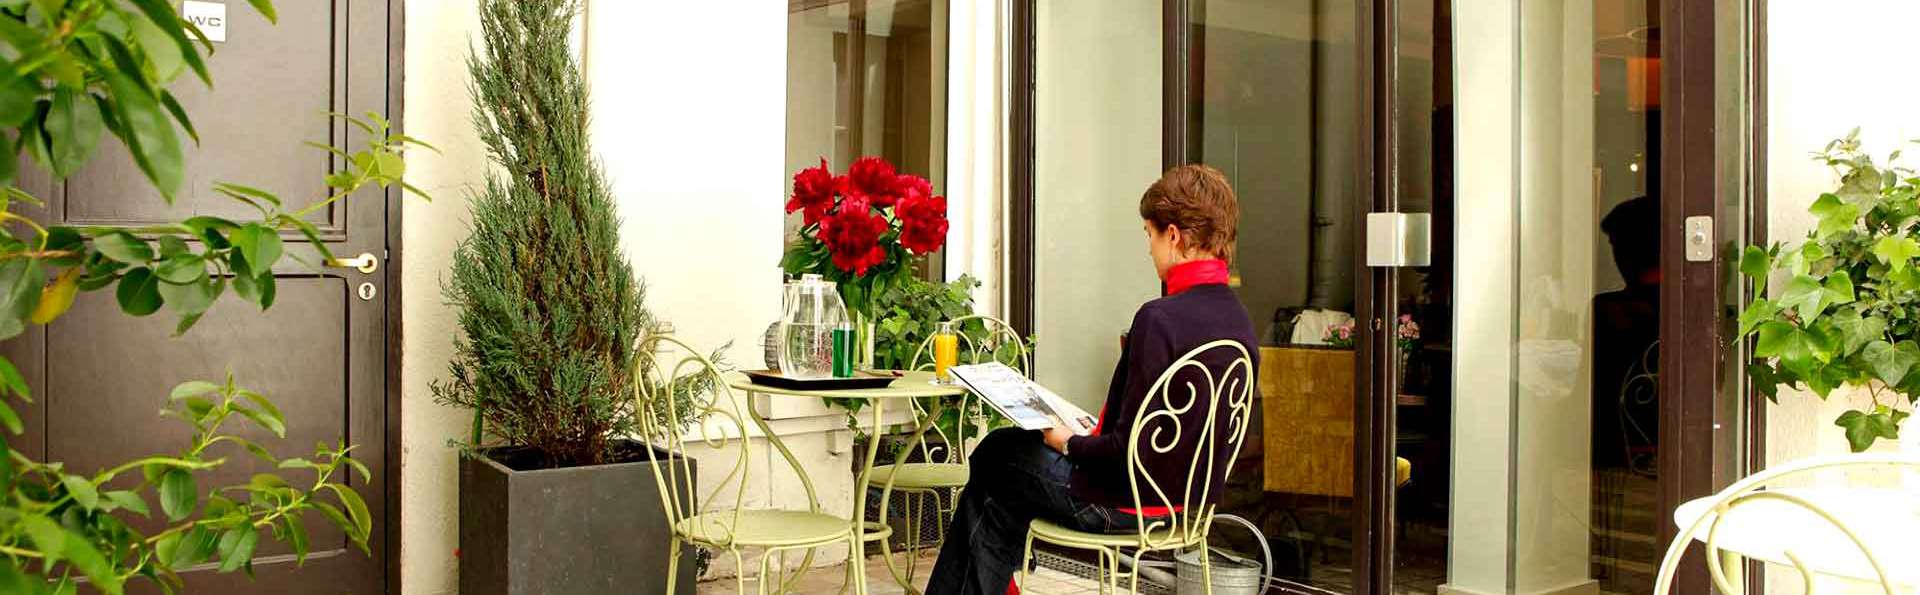 Hôtel Chaplain Paris Rive Gauche - Edit_Terrace.jpg